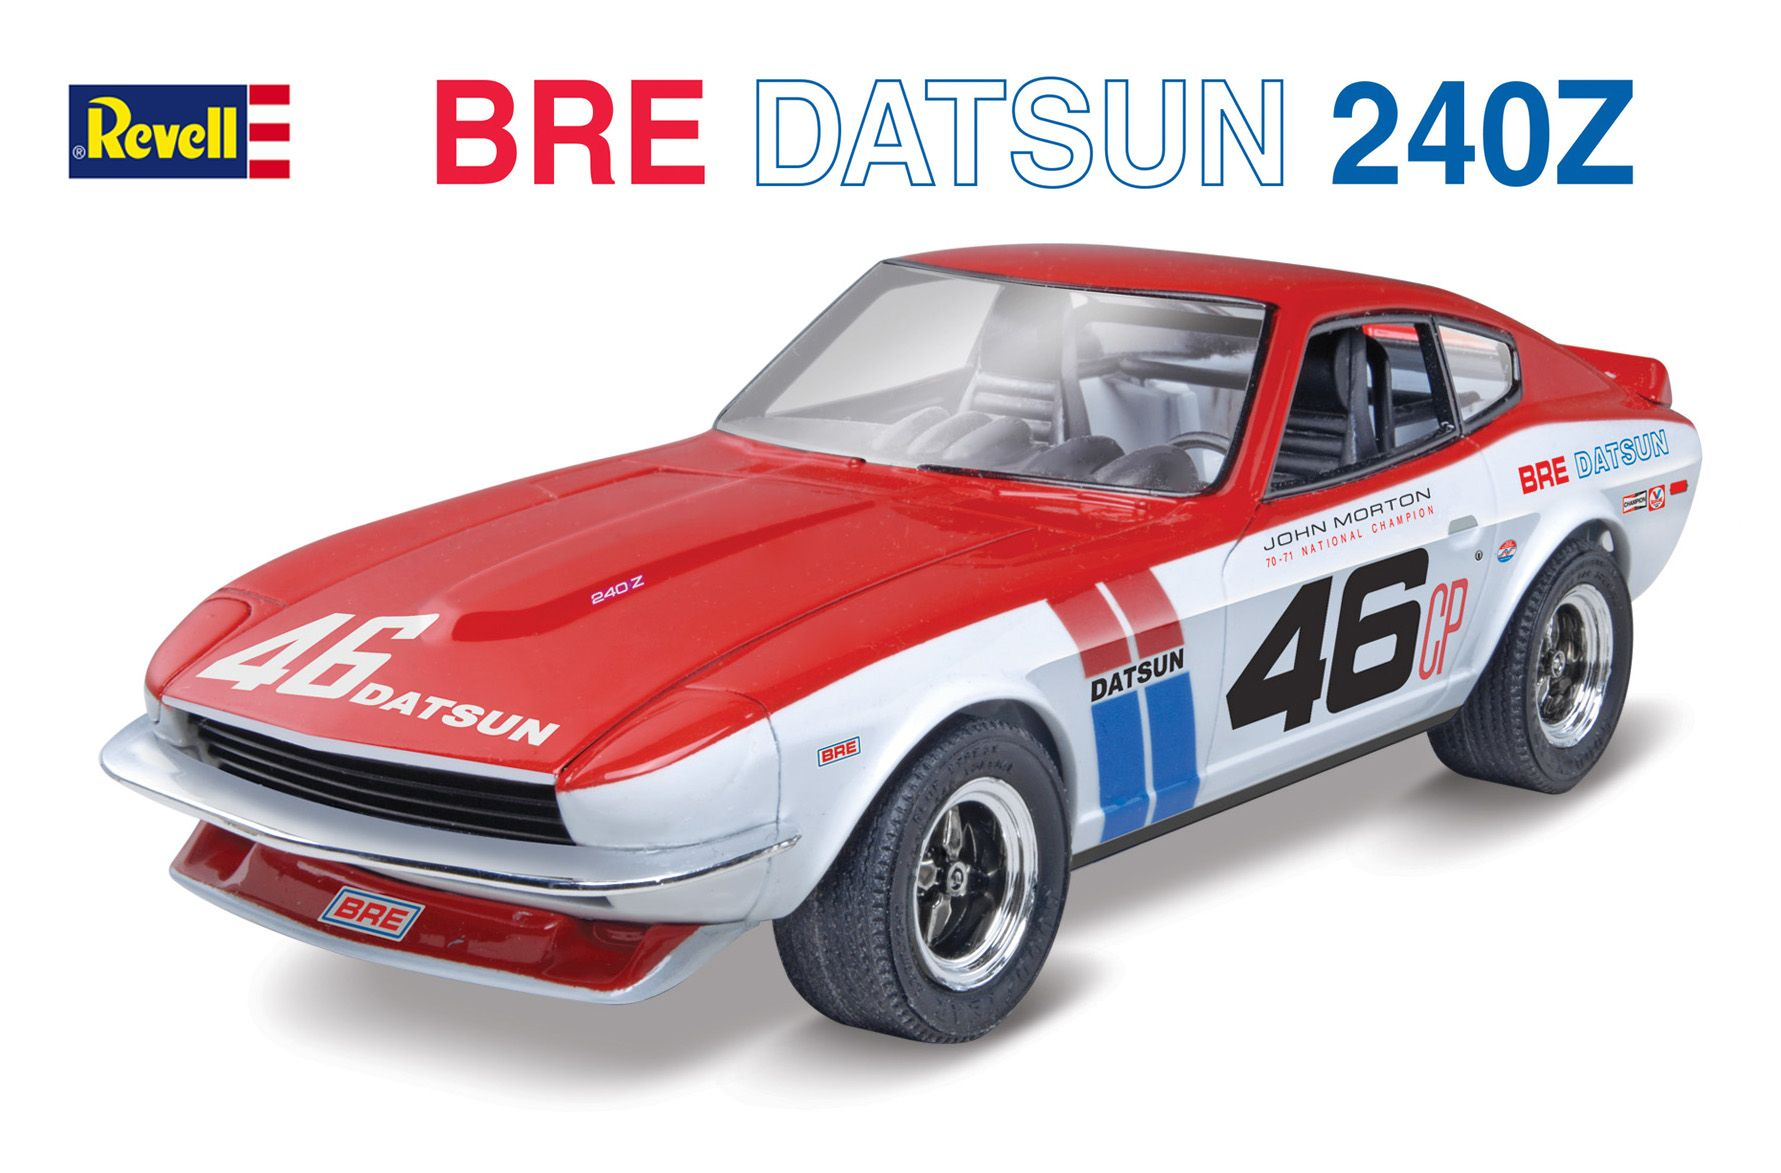 bre datsun 240z plastic model kit from revell kit features a